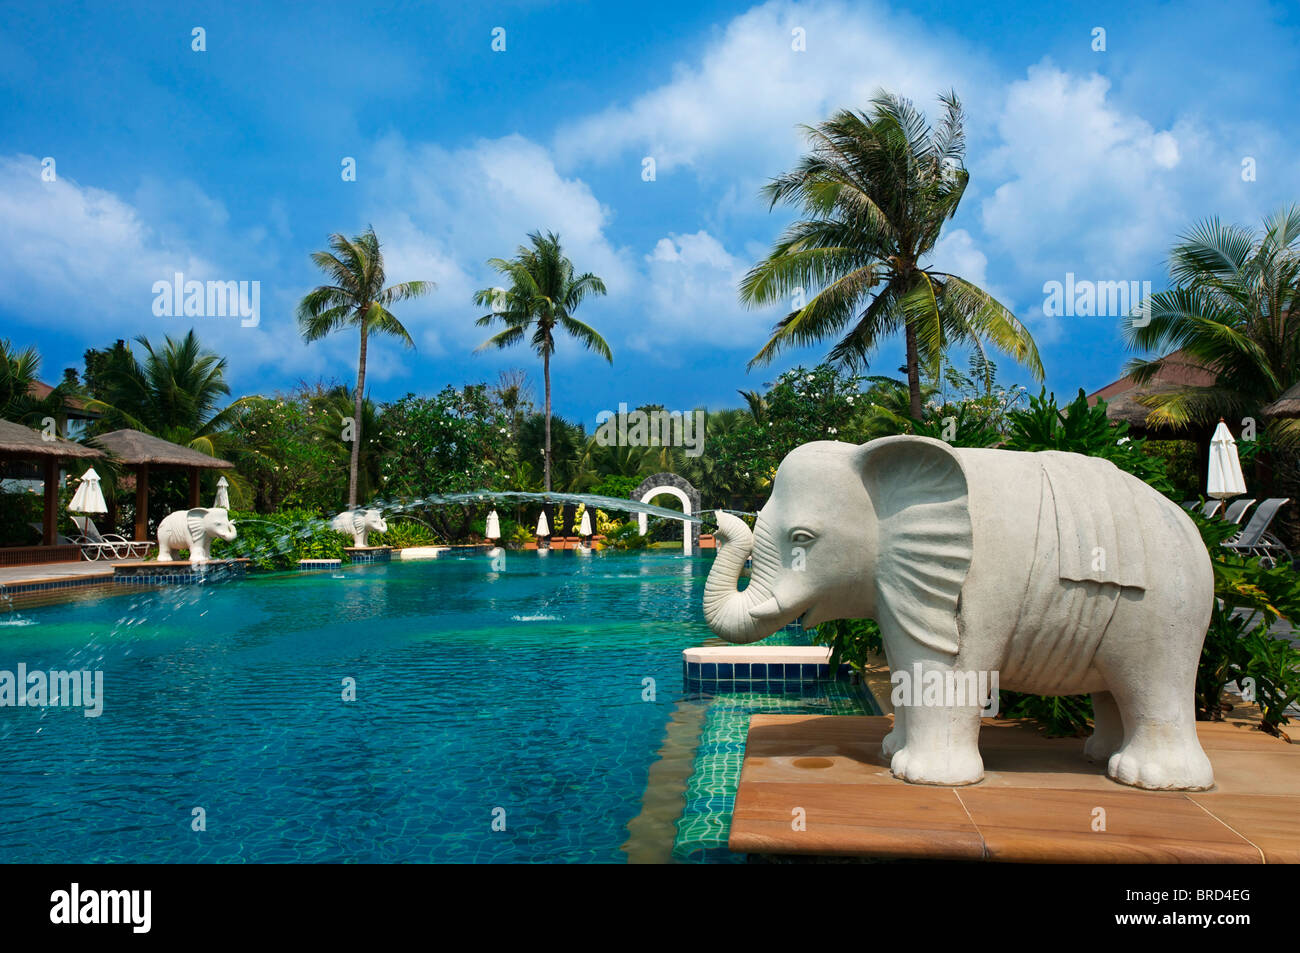 Swimming Pool des Bandara Resort am Mae Nam beach, Ko Samui, Thailand - Stock Image